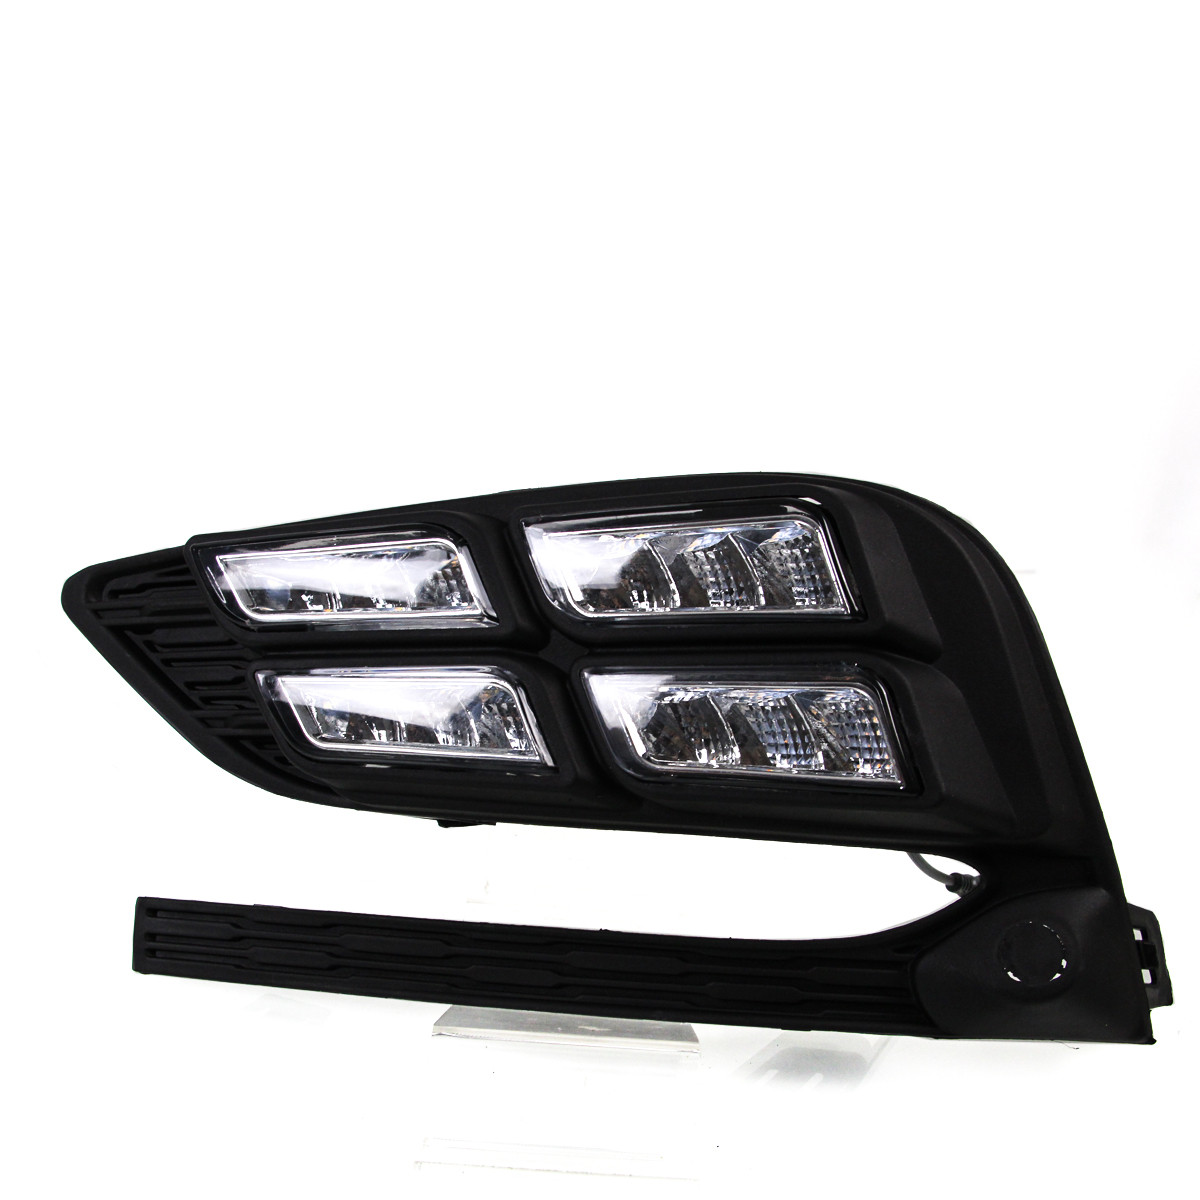 CE Super Bright LED DRL For Chevrolet Cruze China Led Lamps Daytime Driving Lights Led Drl Lights 2016 -2017